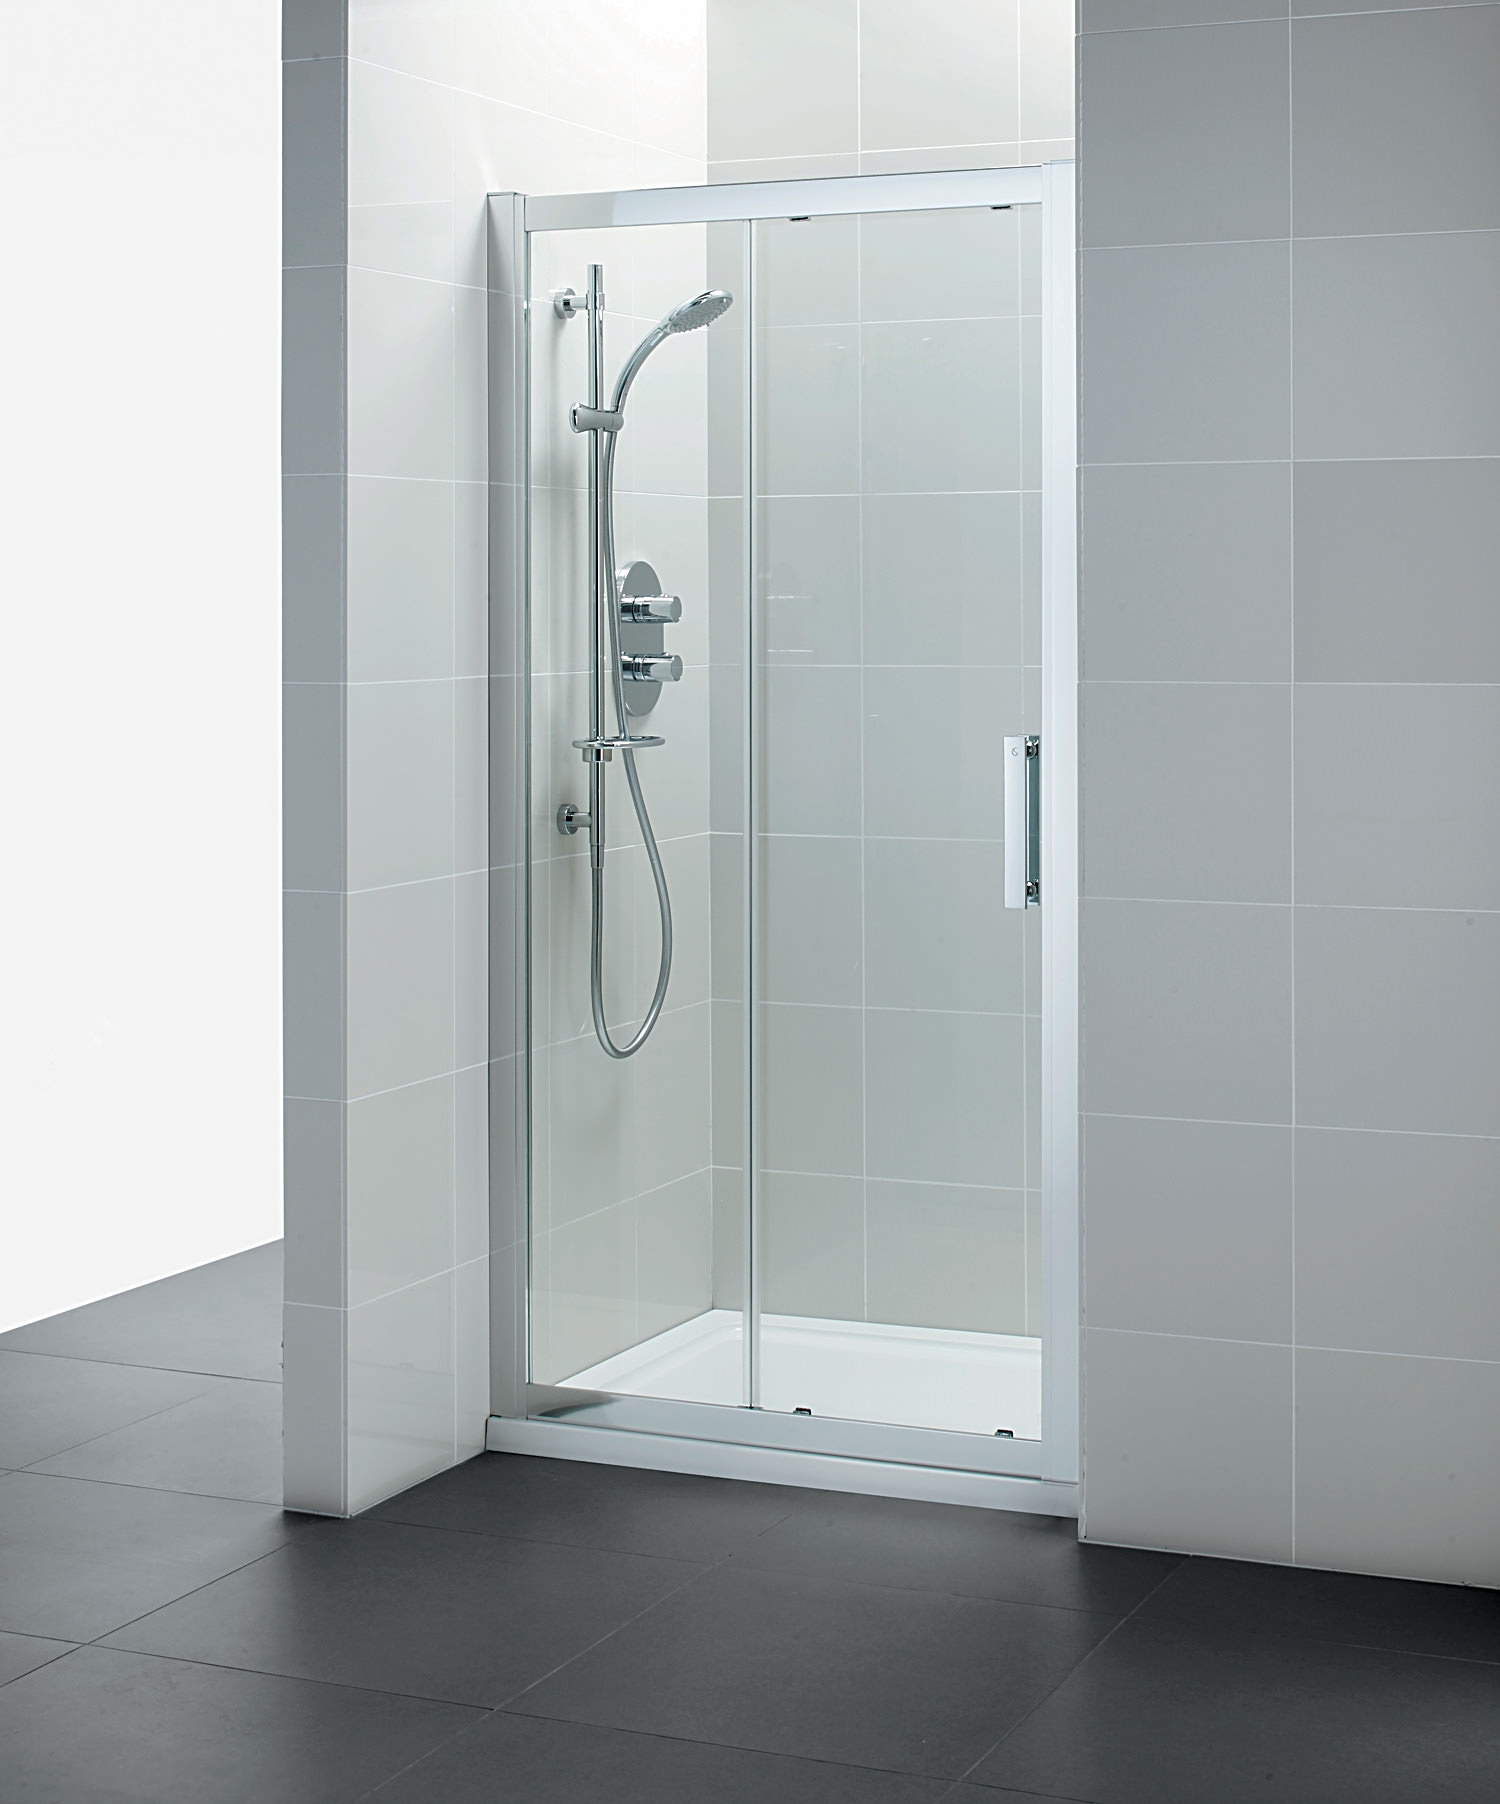 Ideal standard synergy sliding shower door 1200mm for 1200mm shower door sliding